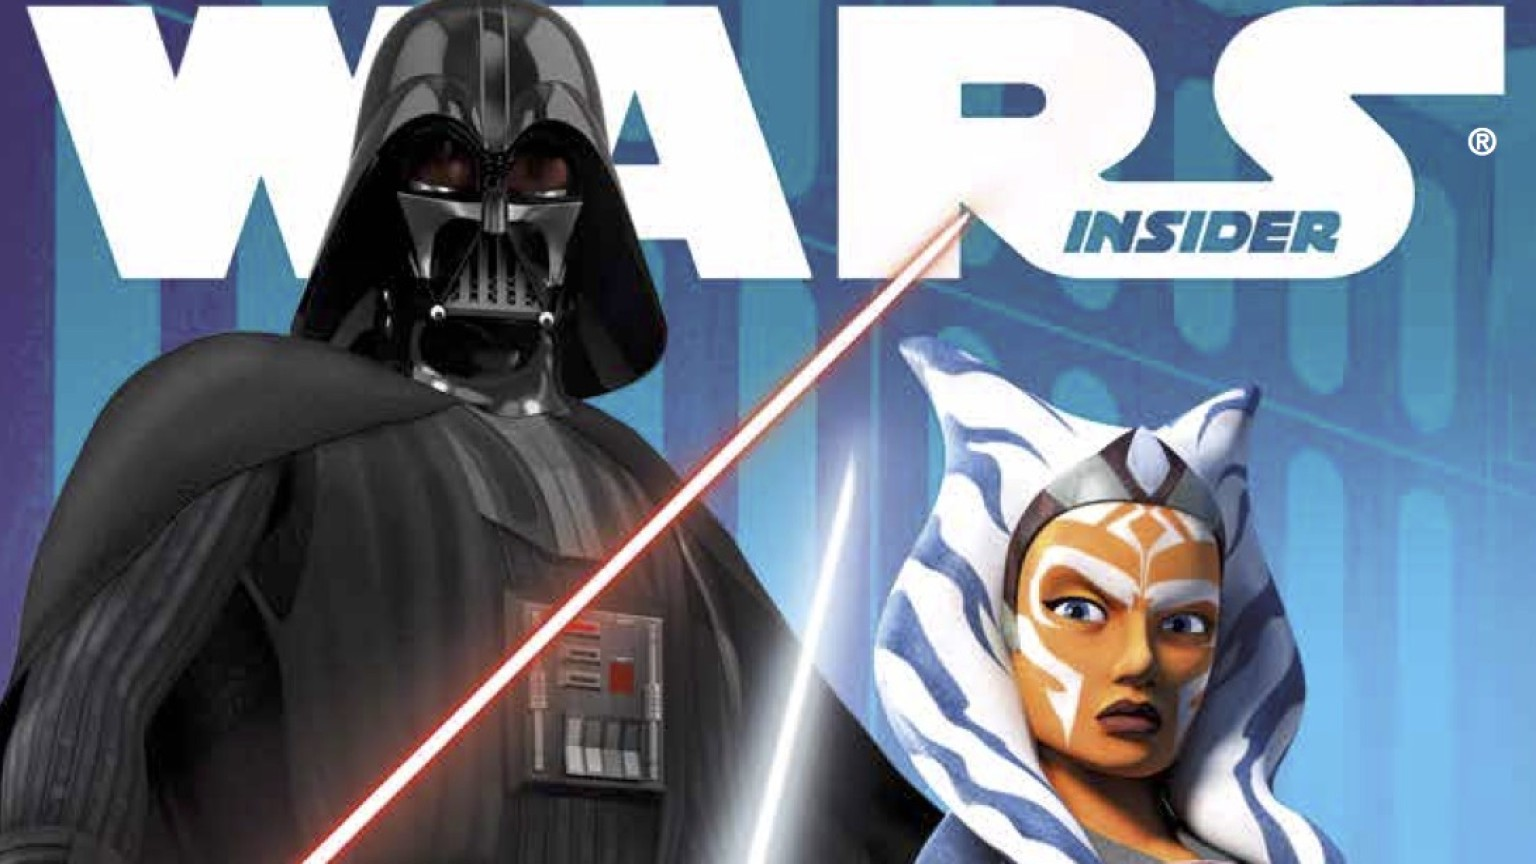 Star Wars Insider - Ahsoka and Vader